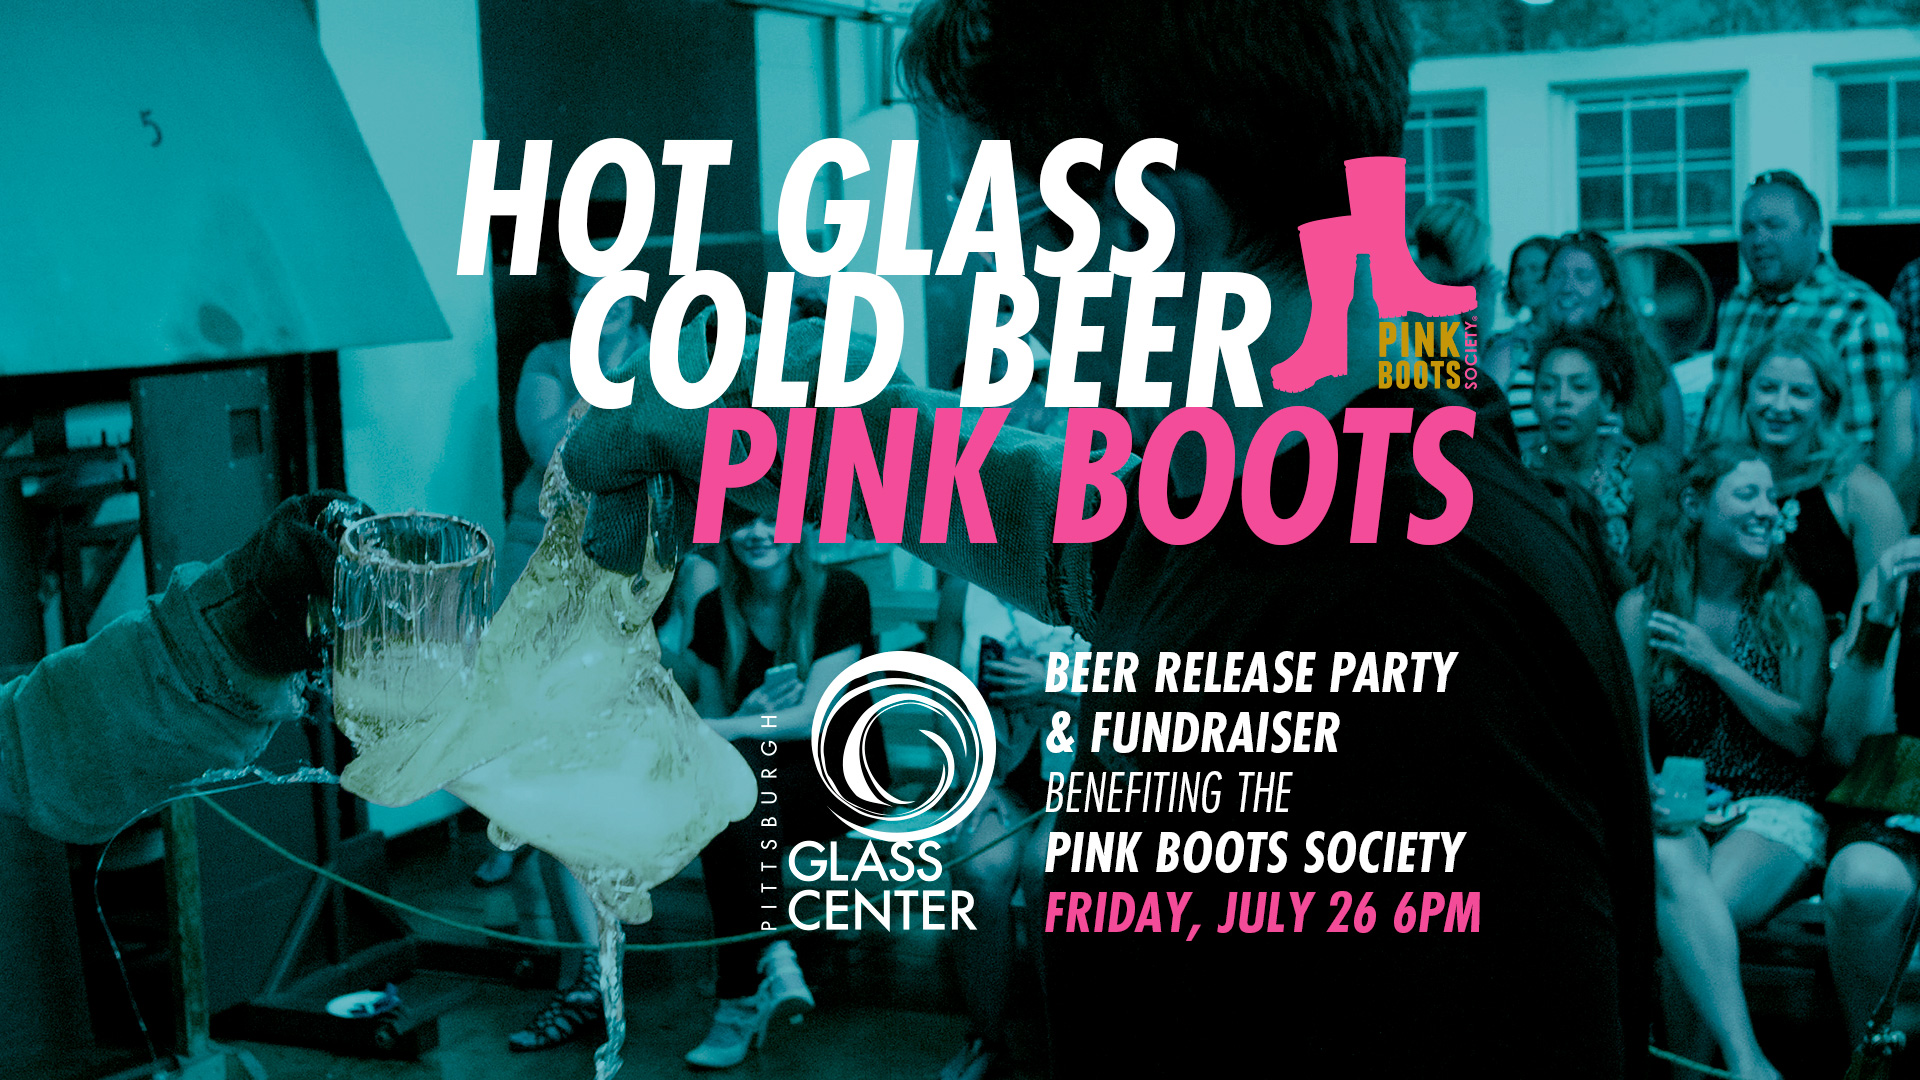 Pink Boots Society fundraiser at Pittsburgh Glass Center